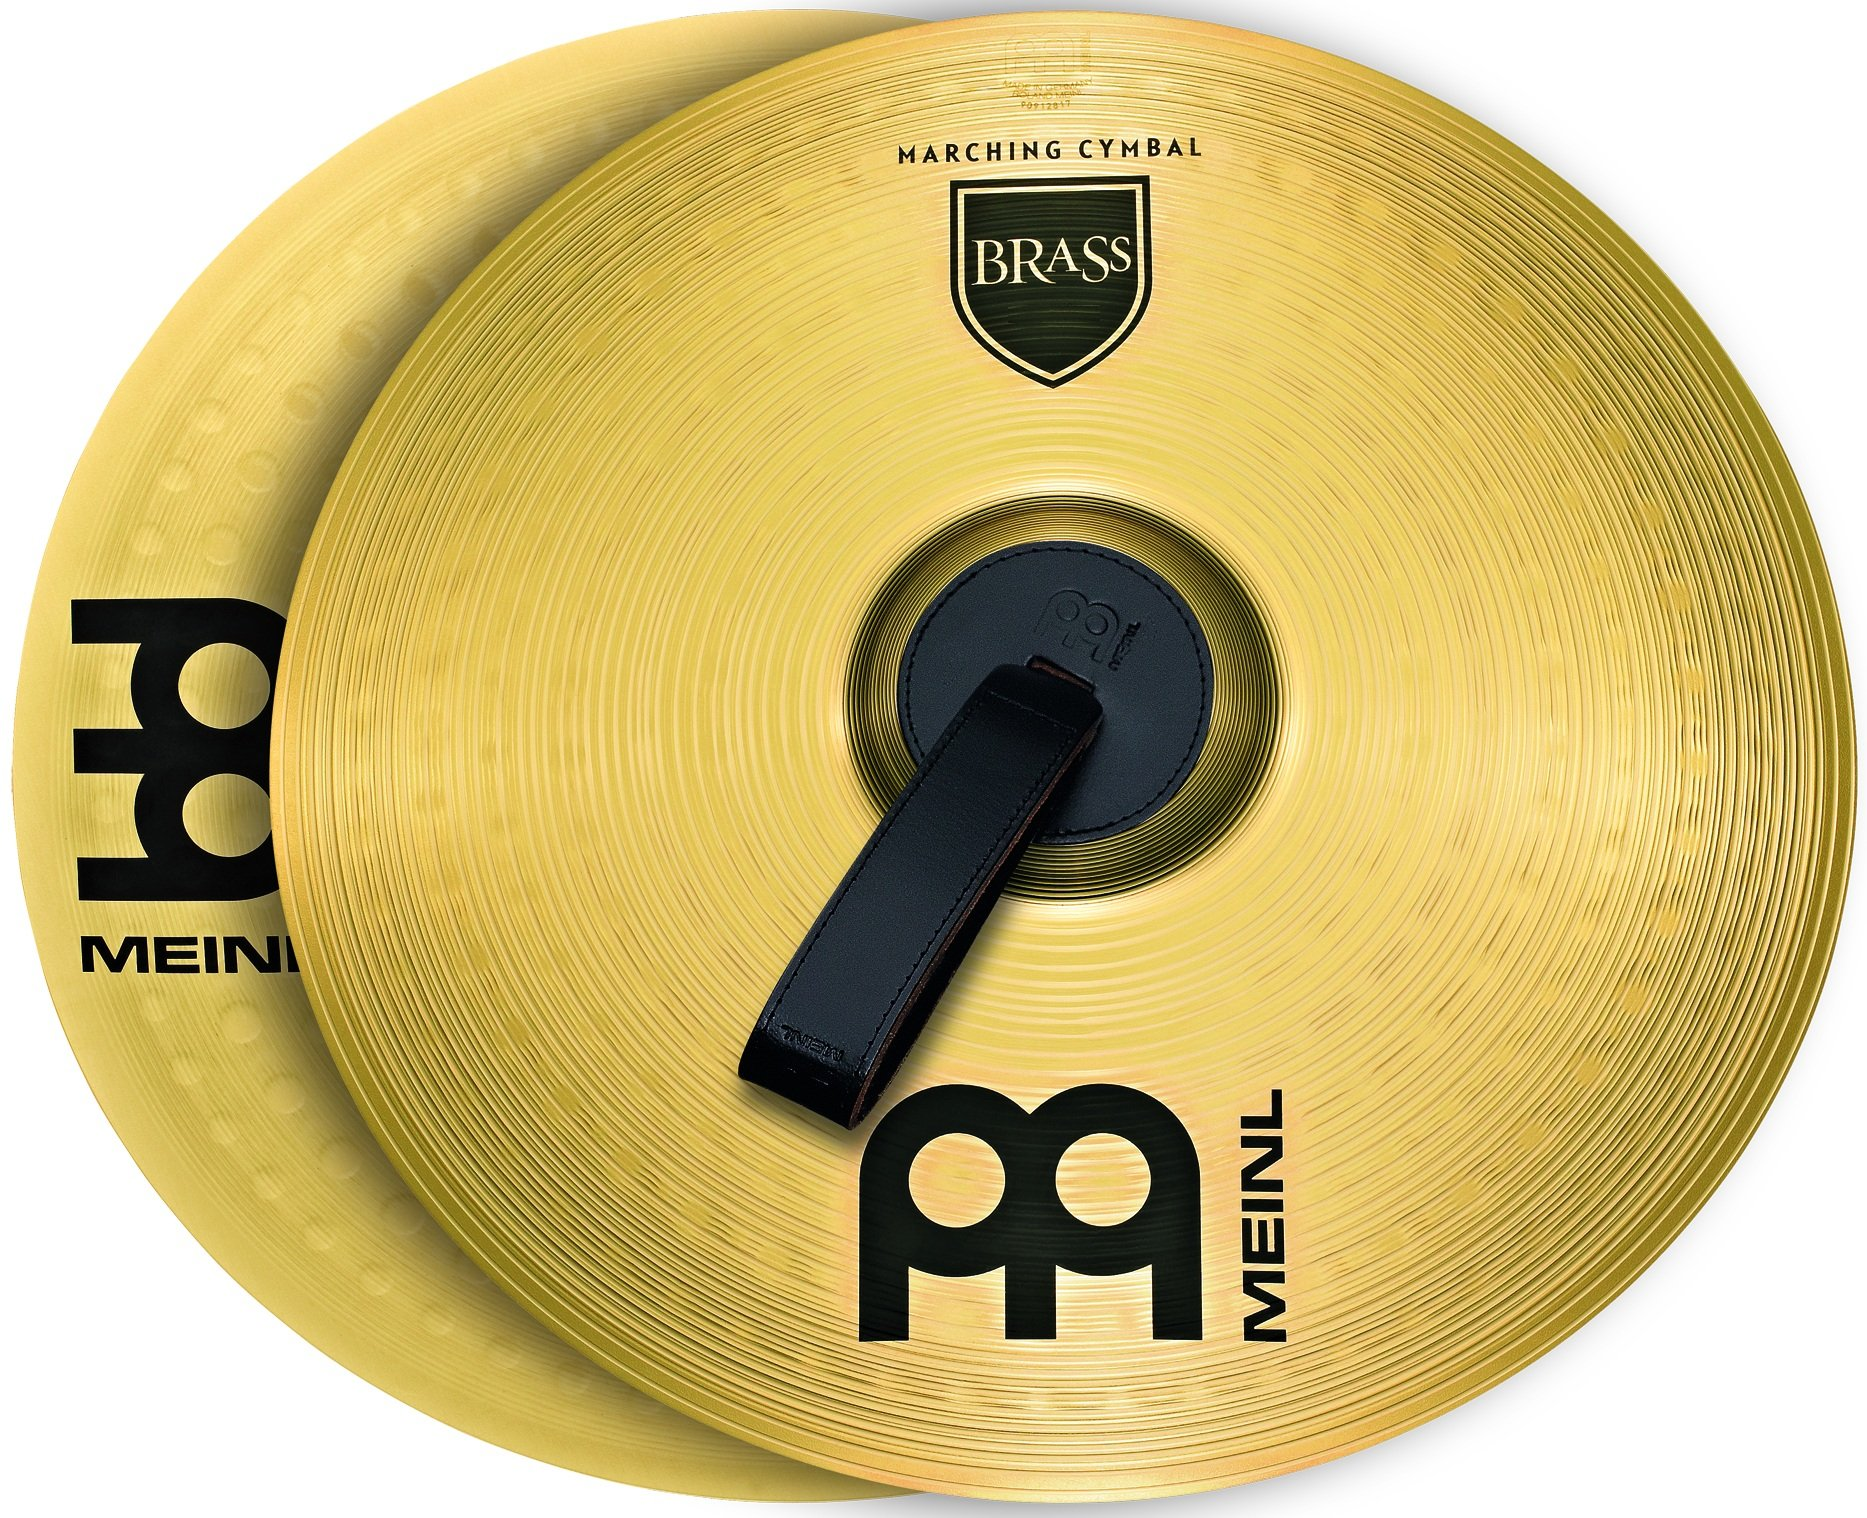 Meinl 13'' Marching Cymbal Pair with Straps - Brass Alloy Traditional Finish - Made In Germany, 2-YEAR WARRANTY (MA-BR-13M) by Meinl Cymbals